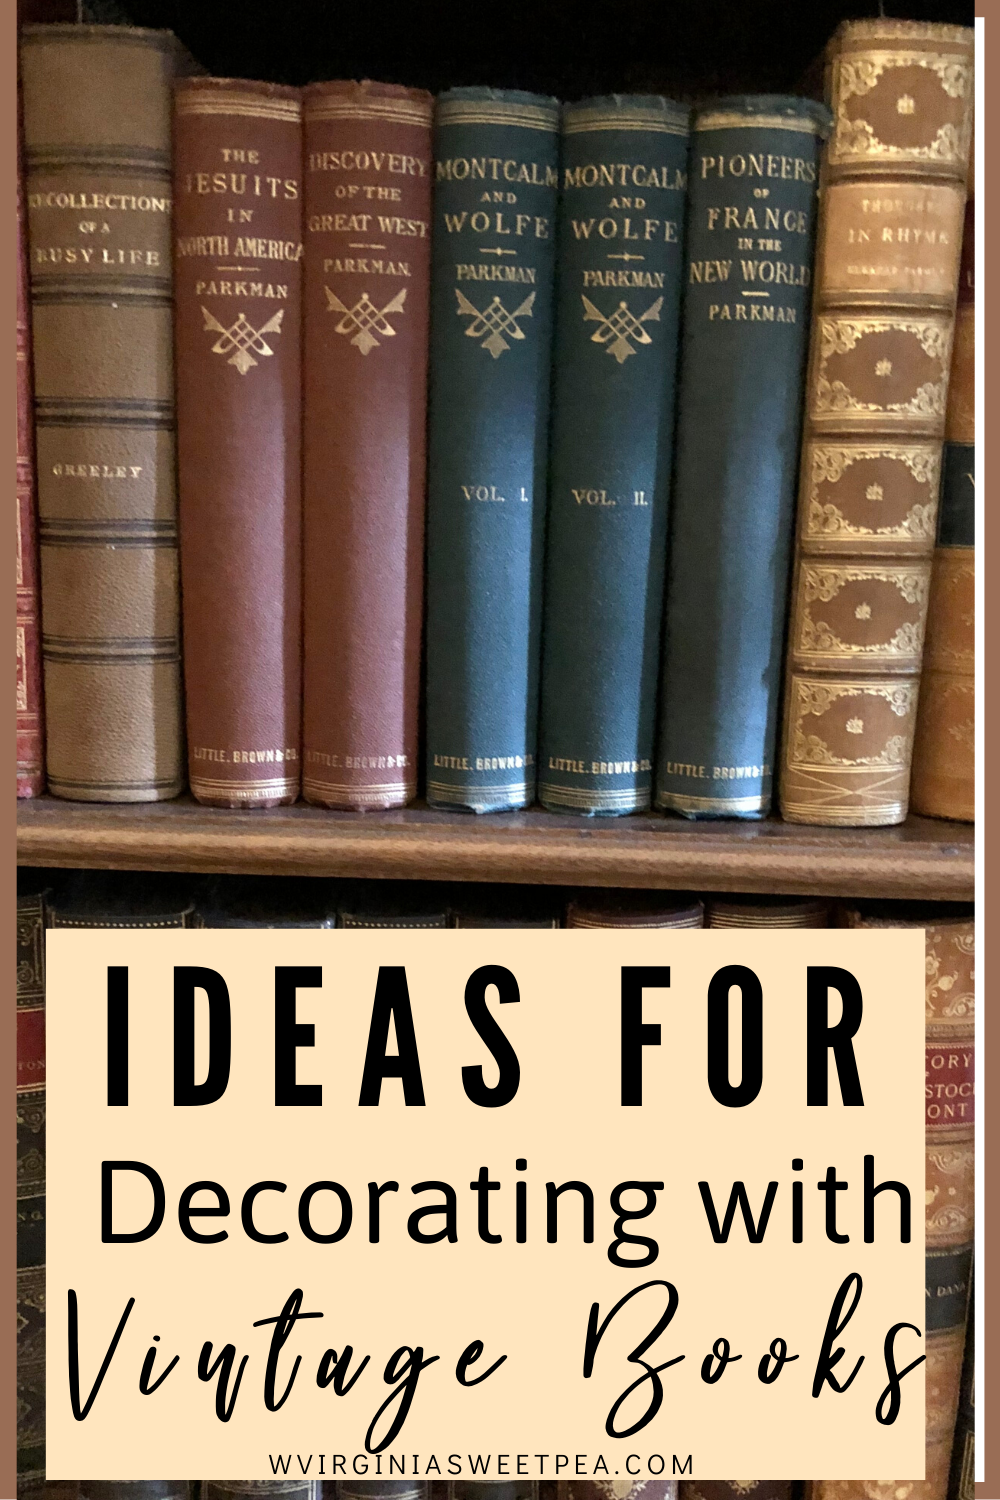 Ideas for Decorating with Vintage Books - Get ideas for ways to use vintage books in home decor. #vintagebooks #decoratingwithvintage #vintagedecorideas via @spaula